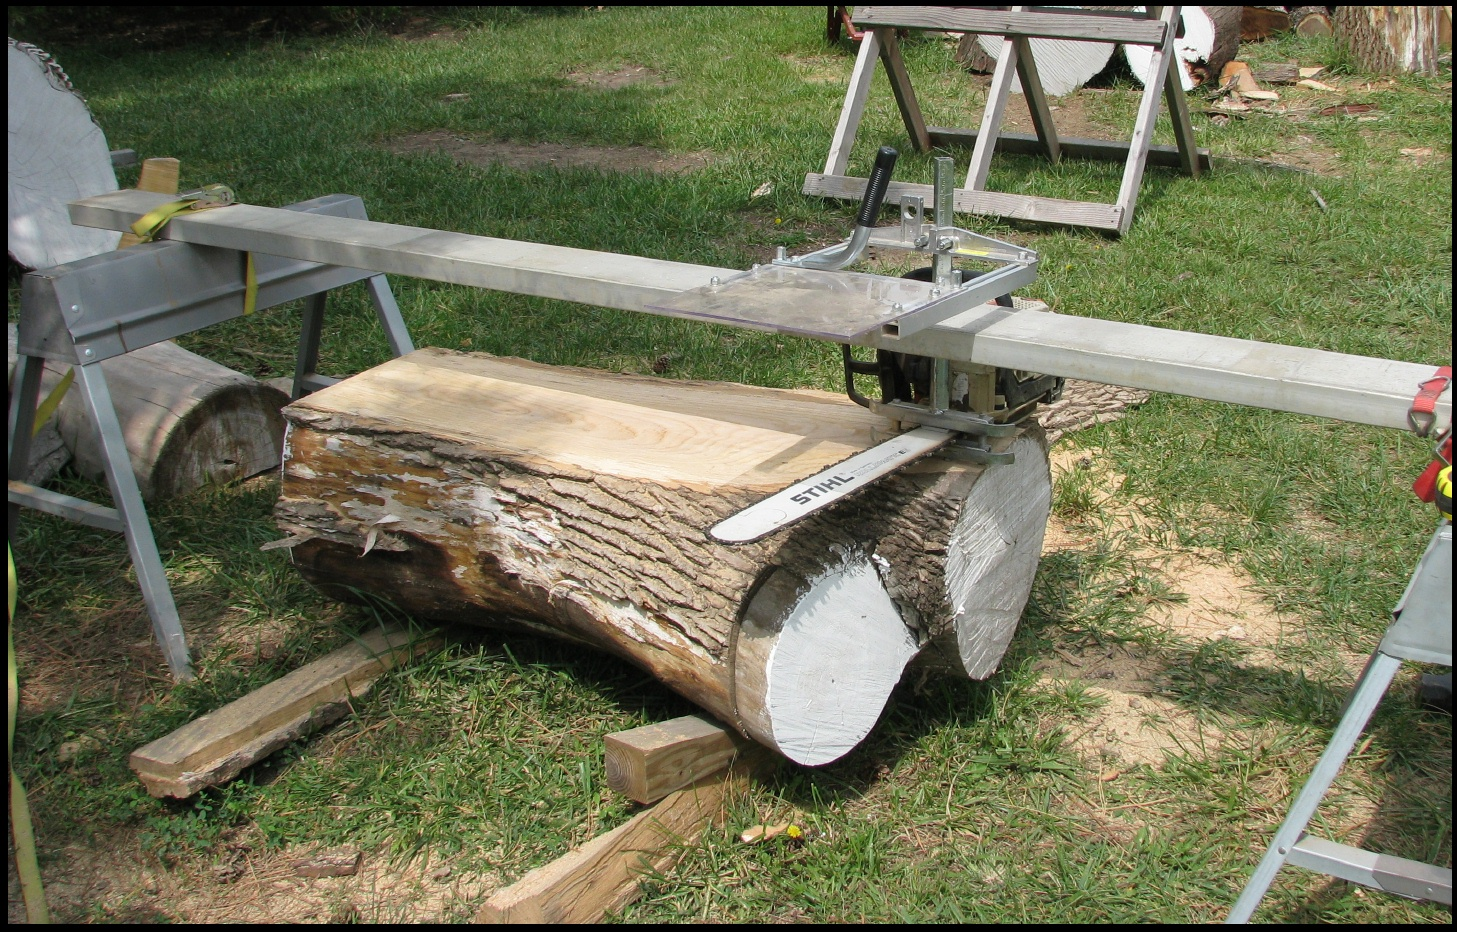 Plans for sawhorses